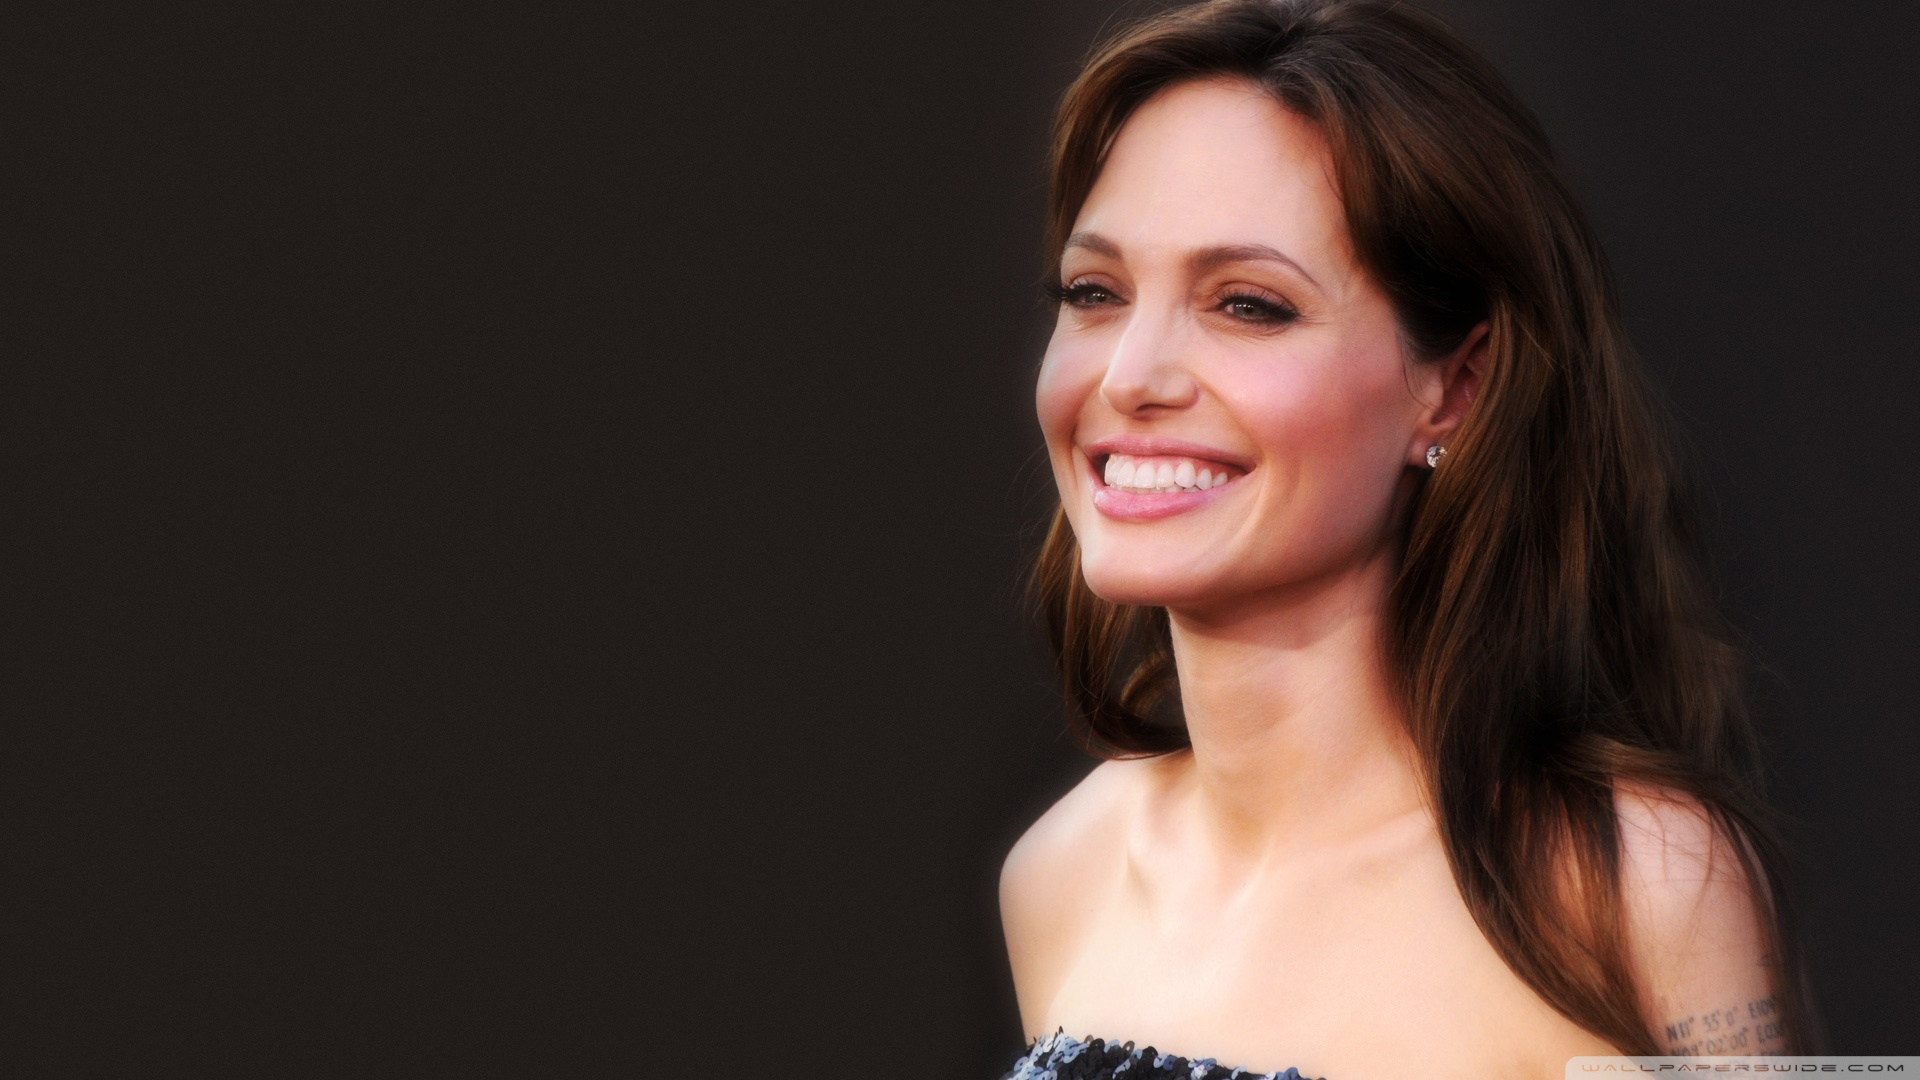 Angelina Jolie 2013 Wallpaper 1920x1080 Angelina Jolie 2013 1920x1080